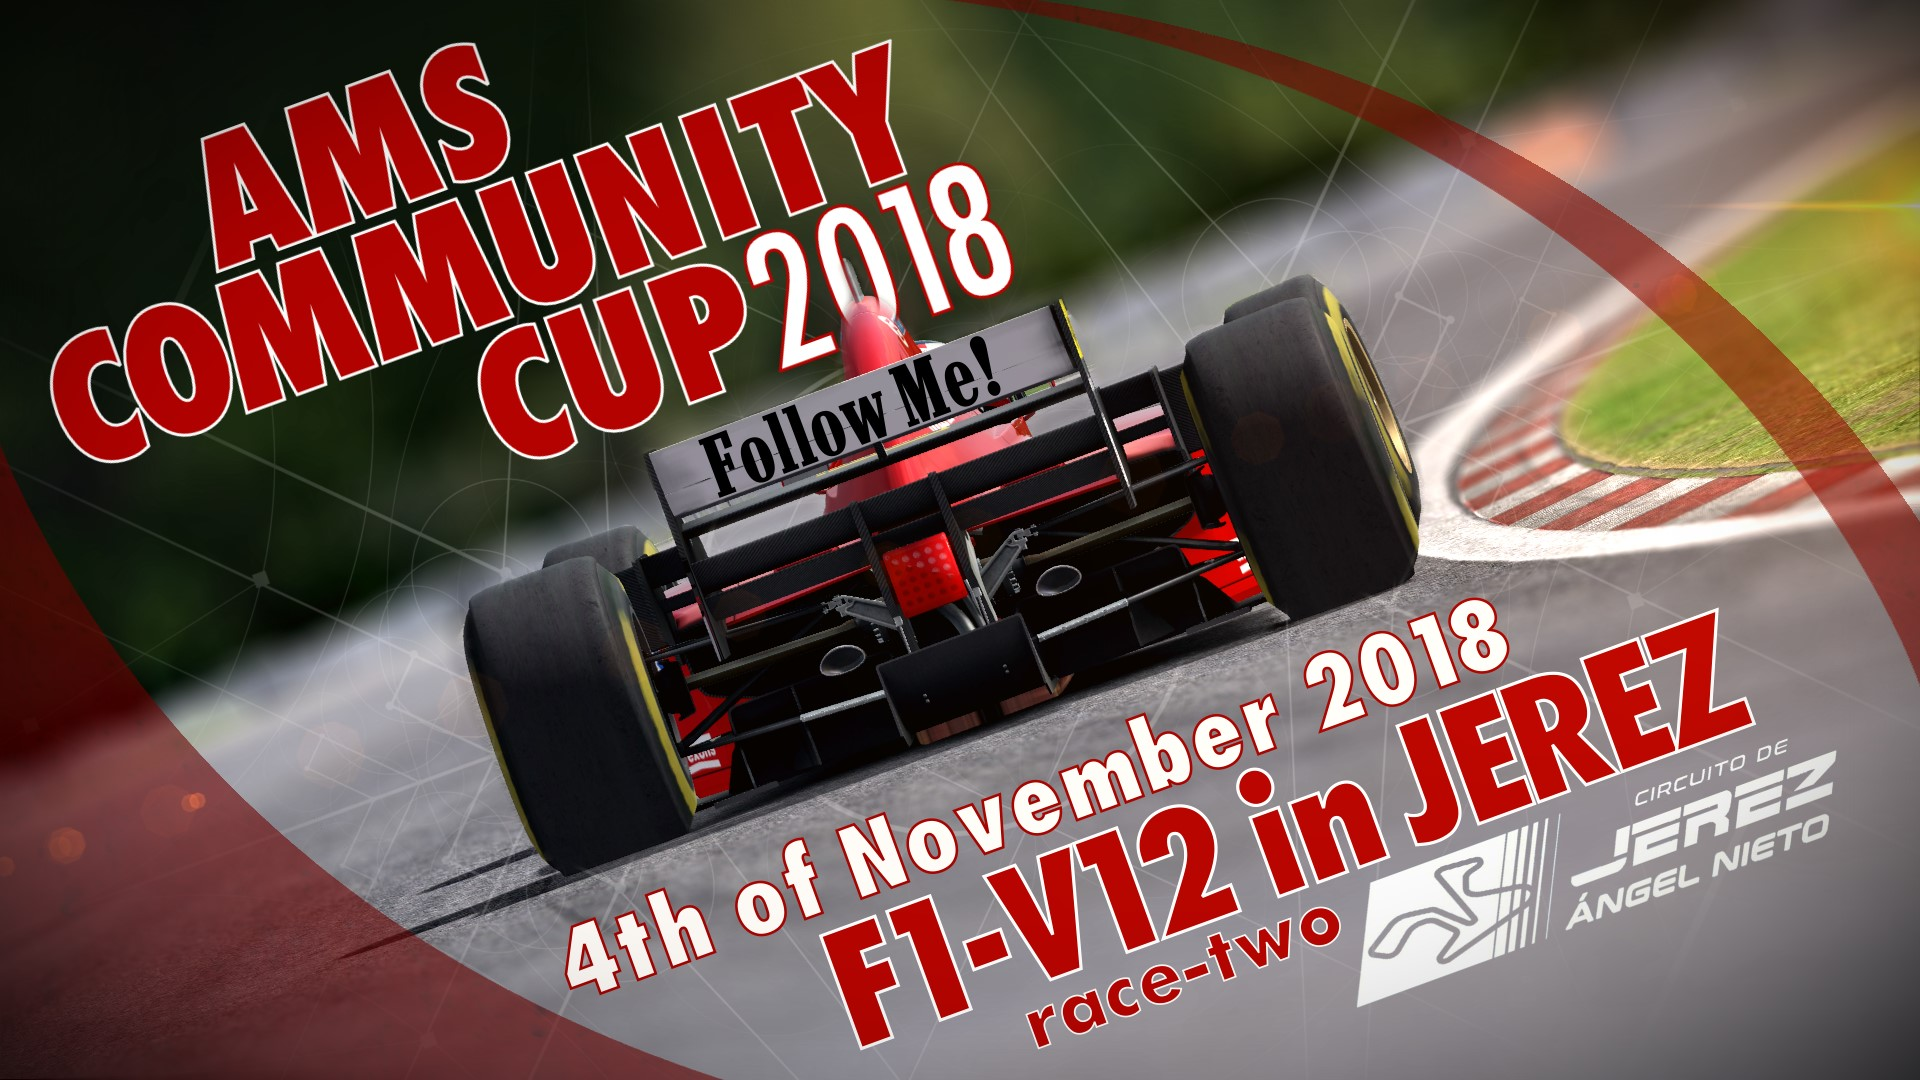 ACC2018_race-two_Poster01.jpg